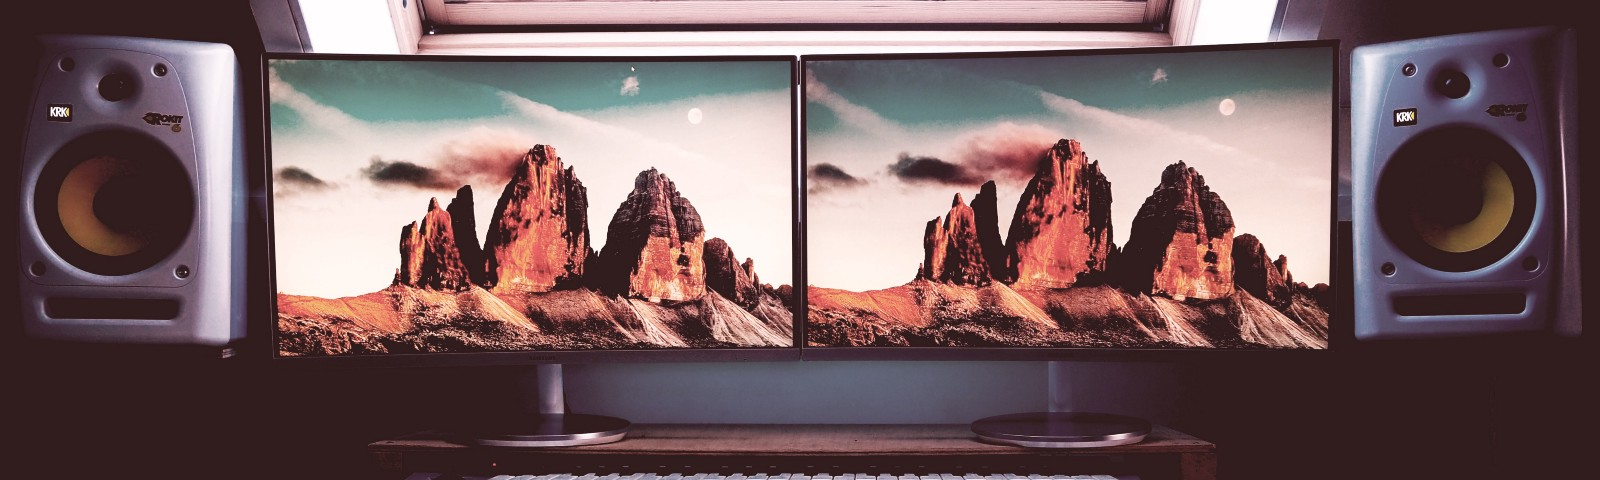 A second screen next to a first. The background image is of mountains.